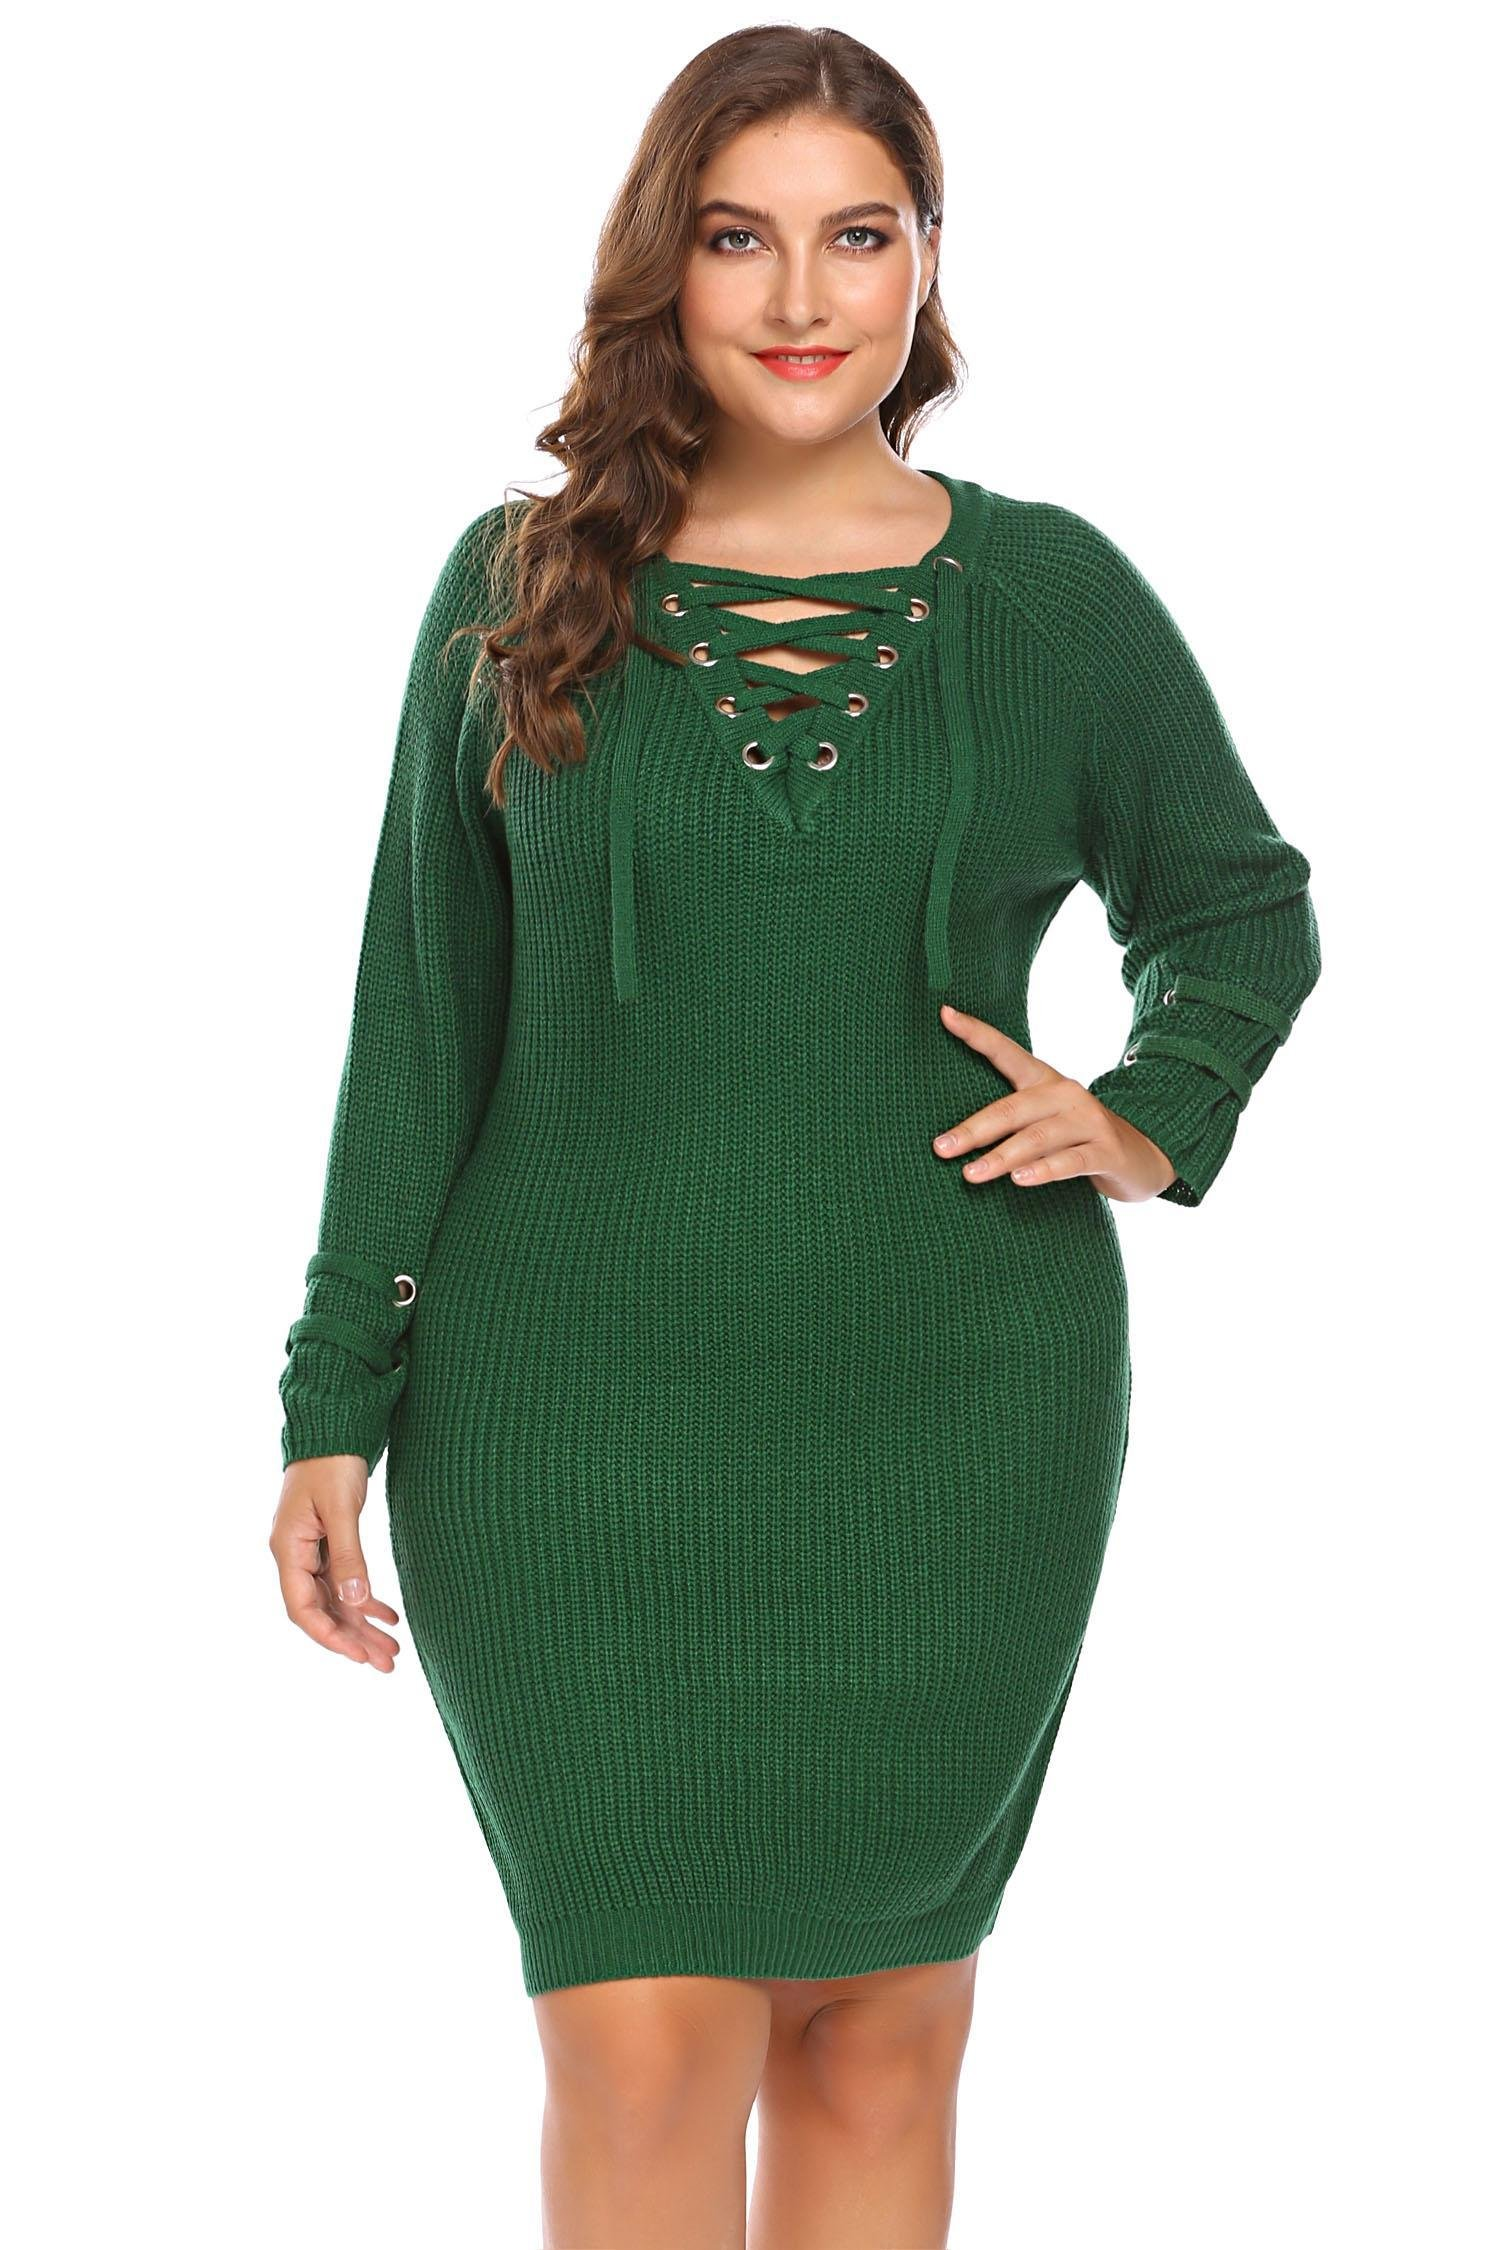 Zeagoo Womens Plus Size Lace Up V-Neck Sweater Dress Long Sleeve Knit Pullover Dress,18 Plus,Army Army Green